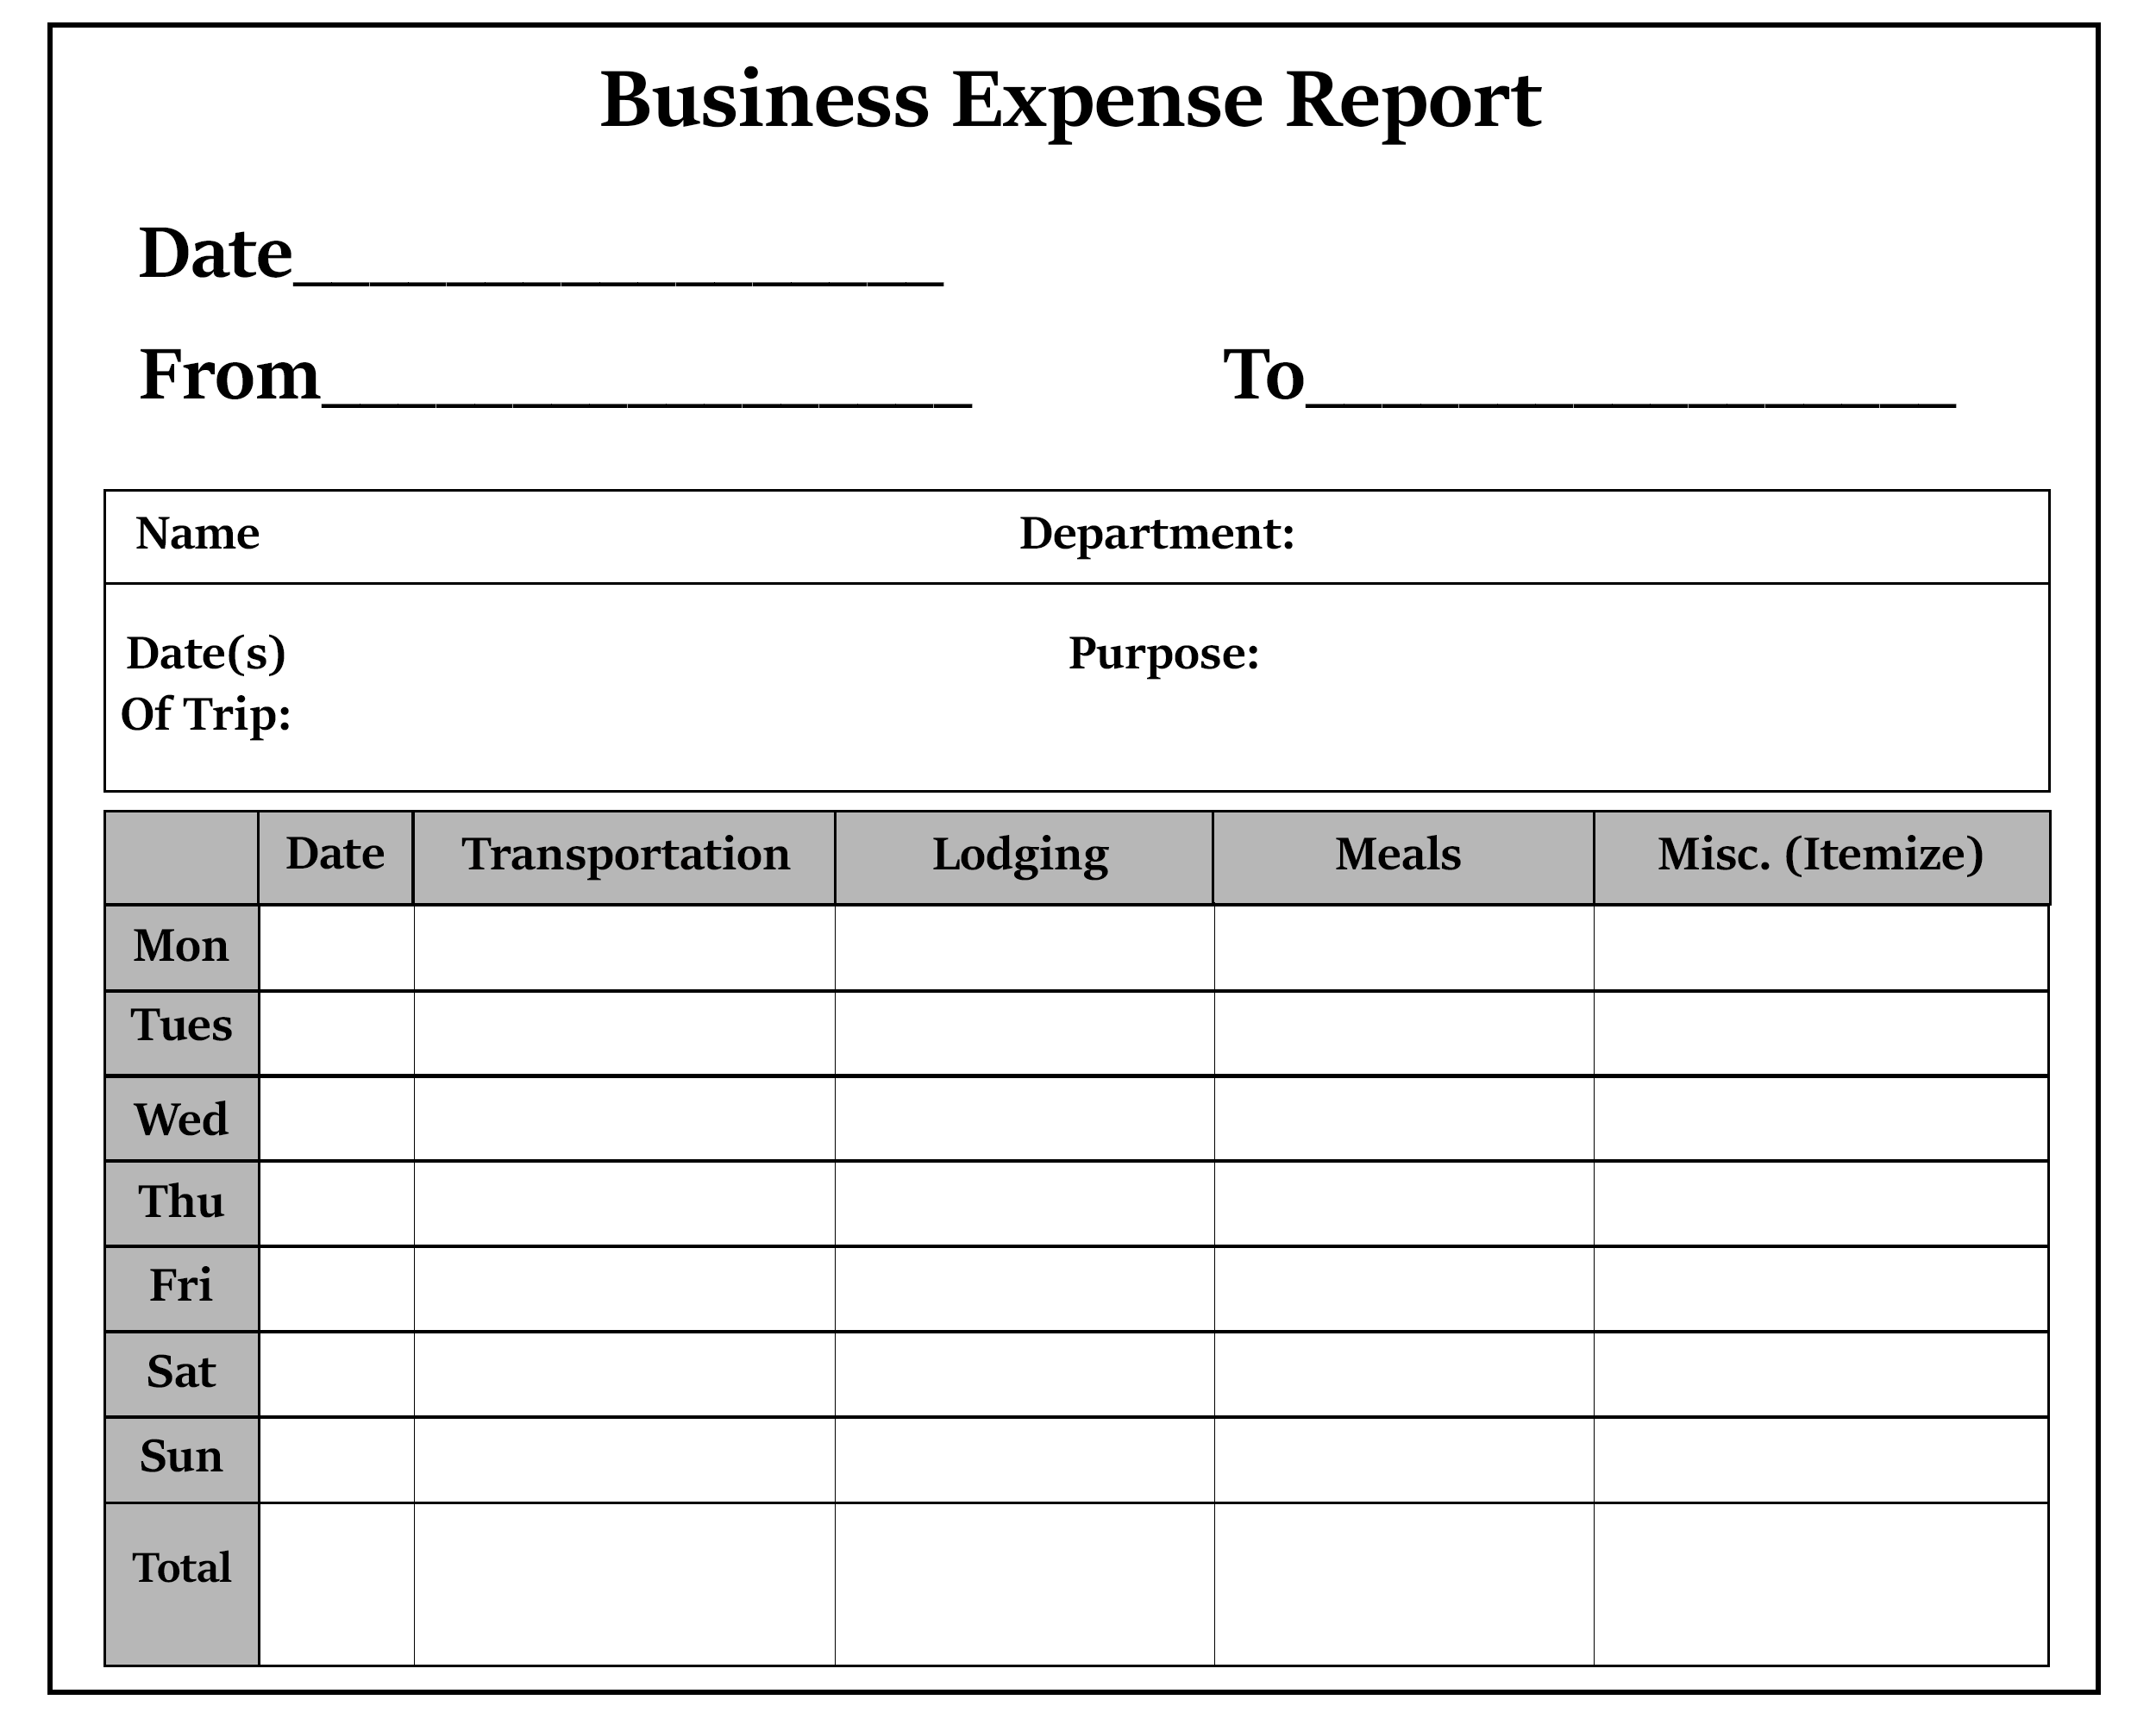 Business Expense Report Sample